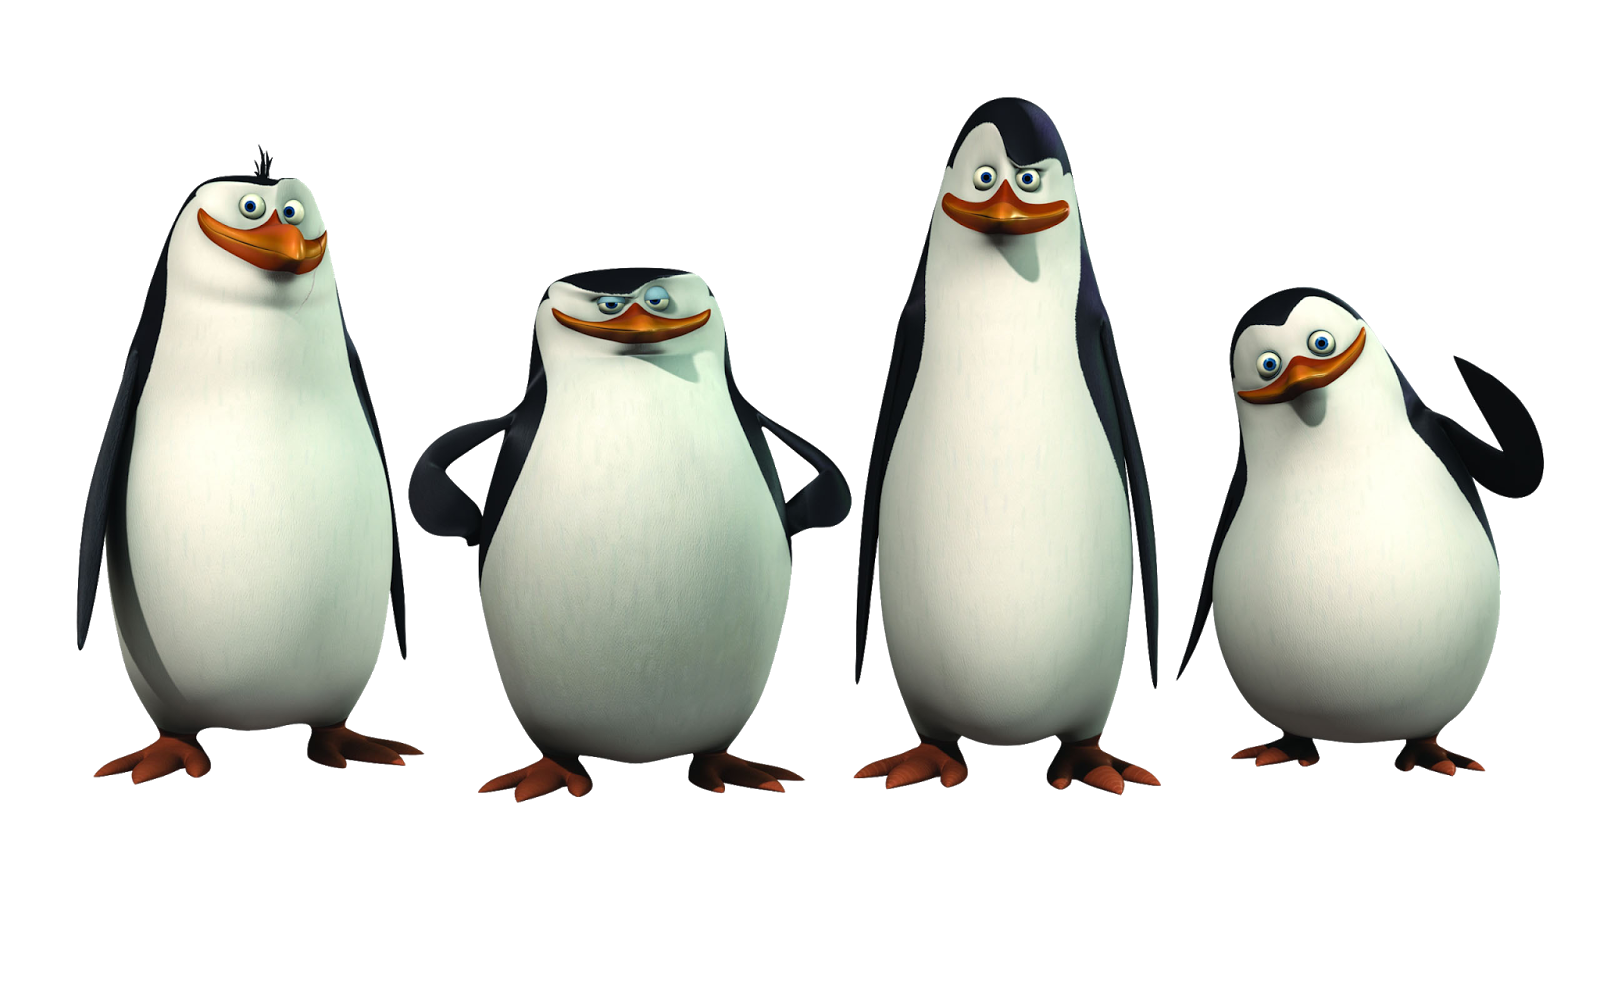 Pin by Printer on render in 2019 | Penguins of madagascar